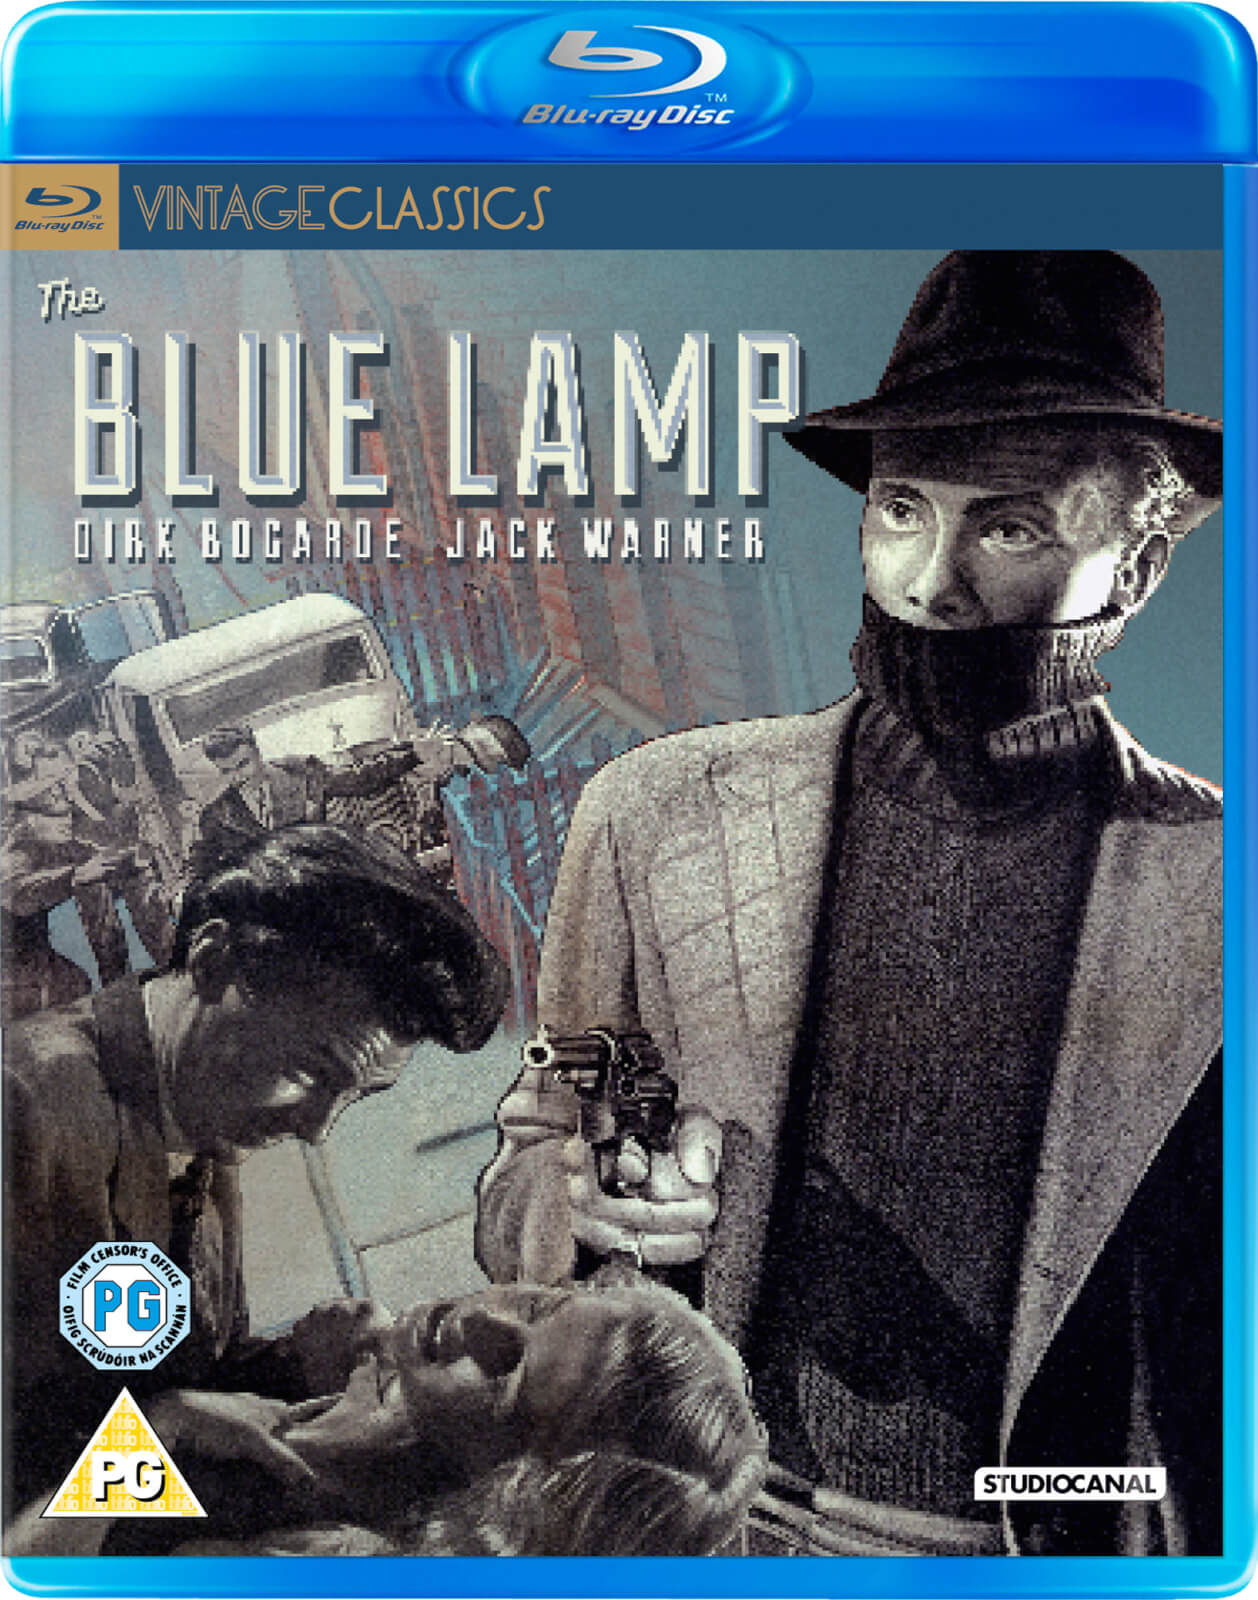 The Blue Lamp (Digitally Restored)